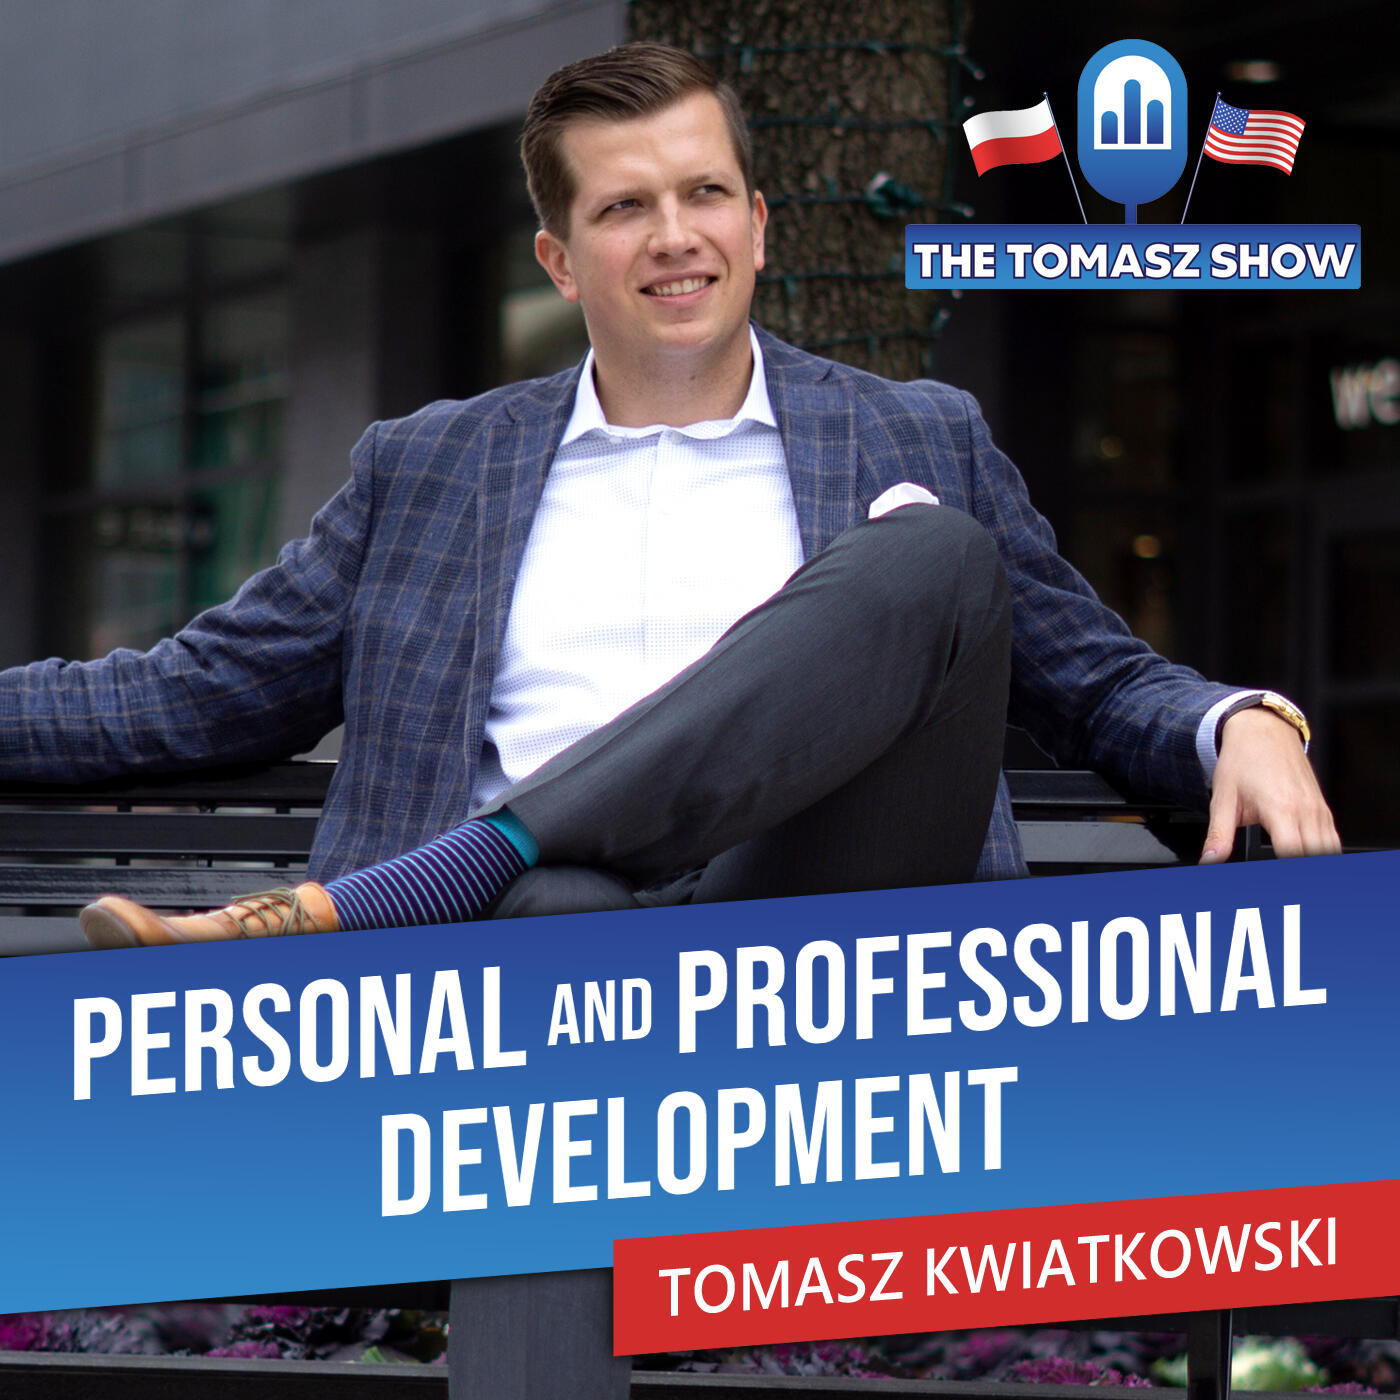 The Tomasz Show